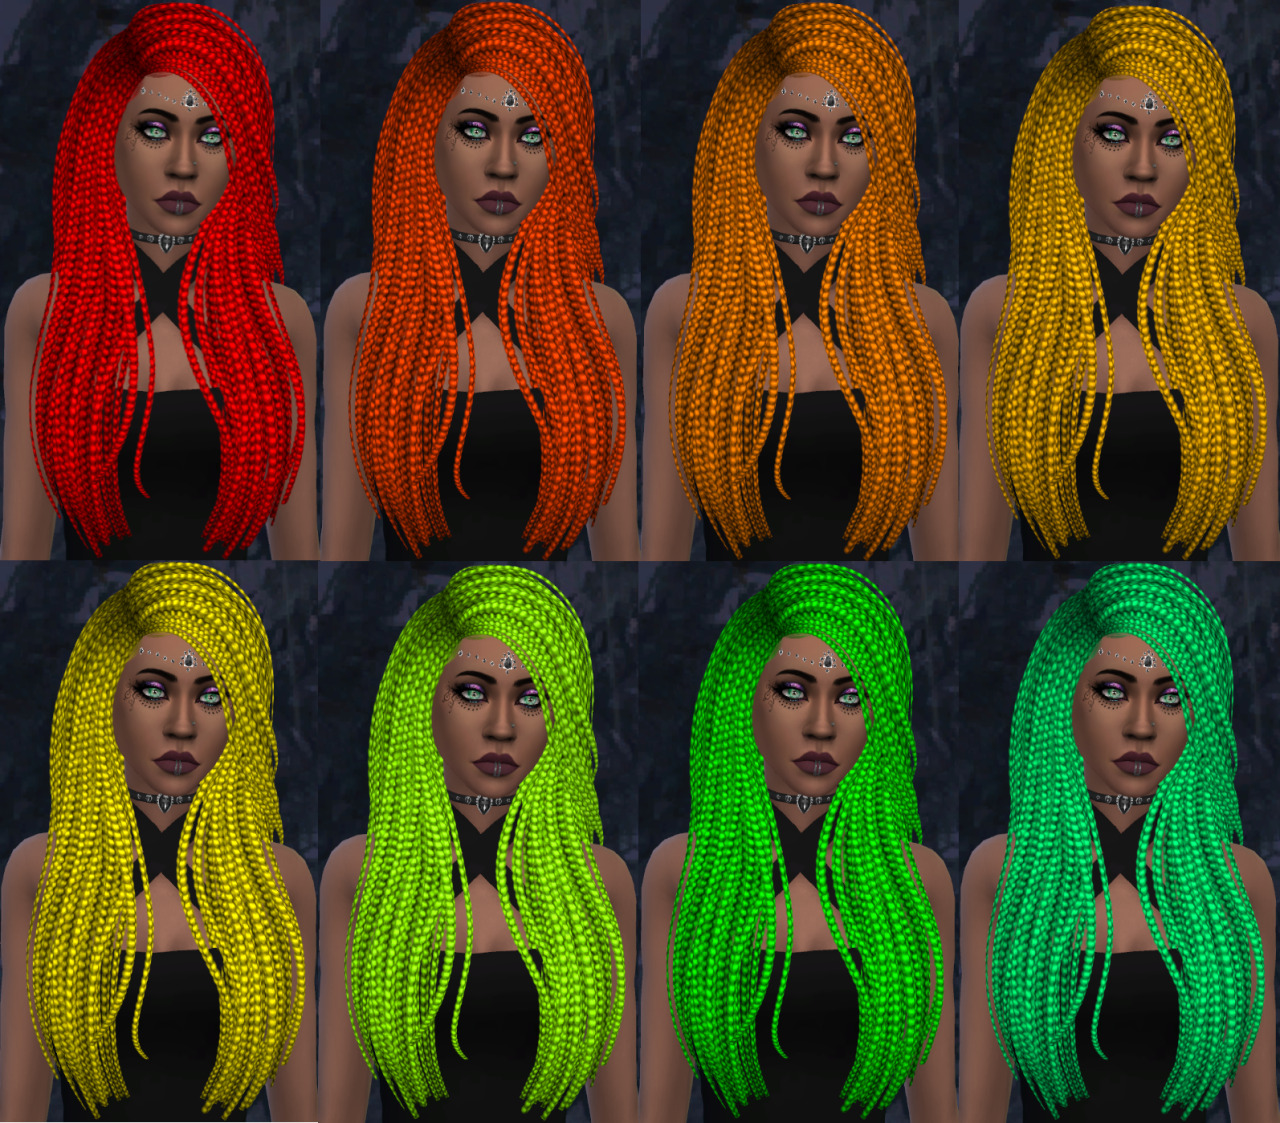 This is a recolor of Nightcrawler Sims Sparks hair. Since this is a recolor,MESH IS NOT INCLUDED !!!Which means you need to download the mesh (the original creation from Nightcrawler sims) for this recolor to work!You can find the mesh on The sims resource HERE This recolor has 19 Different swatches/colors It is recommended to make sure laptop mode is OFF and settings are HIGH in game to make this recolor look this great in game Again, don't forget to download the MESH Huge thanks to Nightcrawler Sims for making this super cool hair, and for allowing recolors of it :) Download link to my recolor (Via Simfileshare) HERE #ts4 #the sims 4 #sims 4#sims#cc#custom content#ts4 cc #ts4 custom content #ts4 recolor#cc recolor#ad free#cc adfree#cc simfileshare#simfileshare#colorful cc#ts4 hair#intense colors#recolor hair